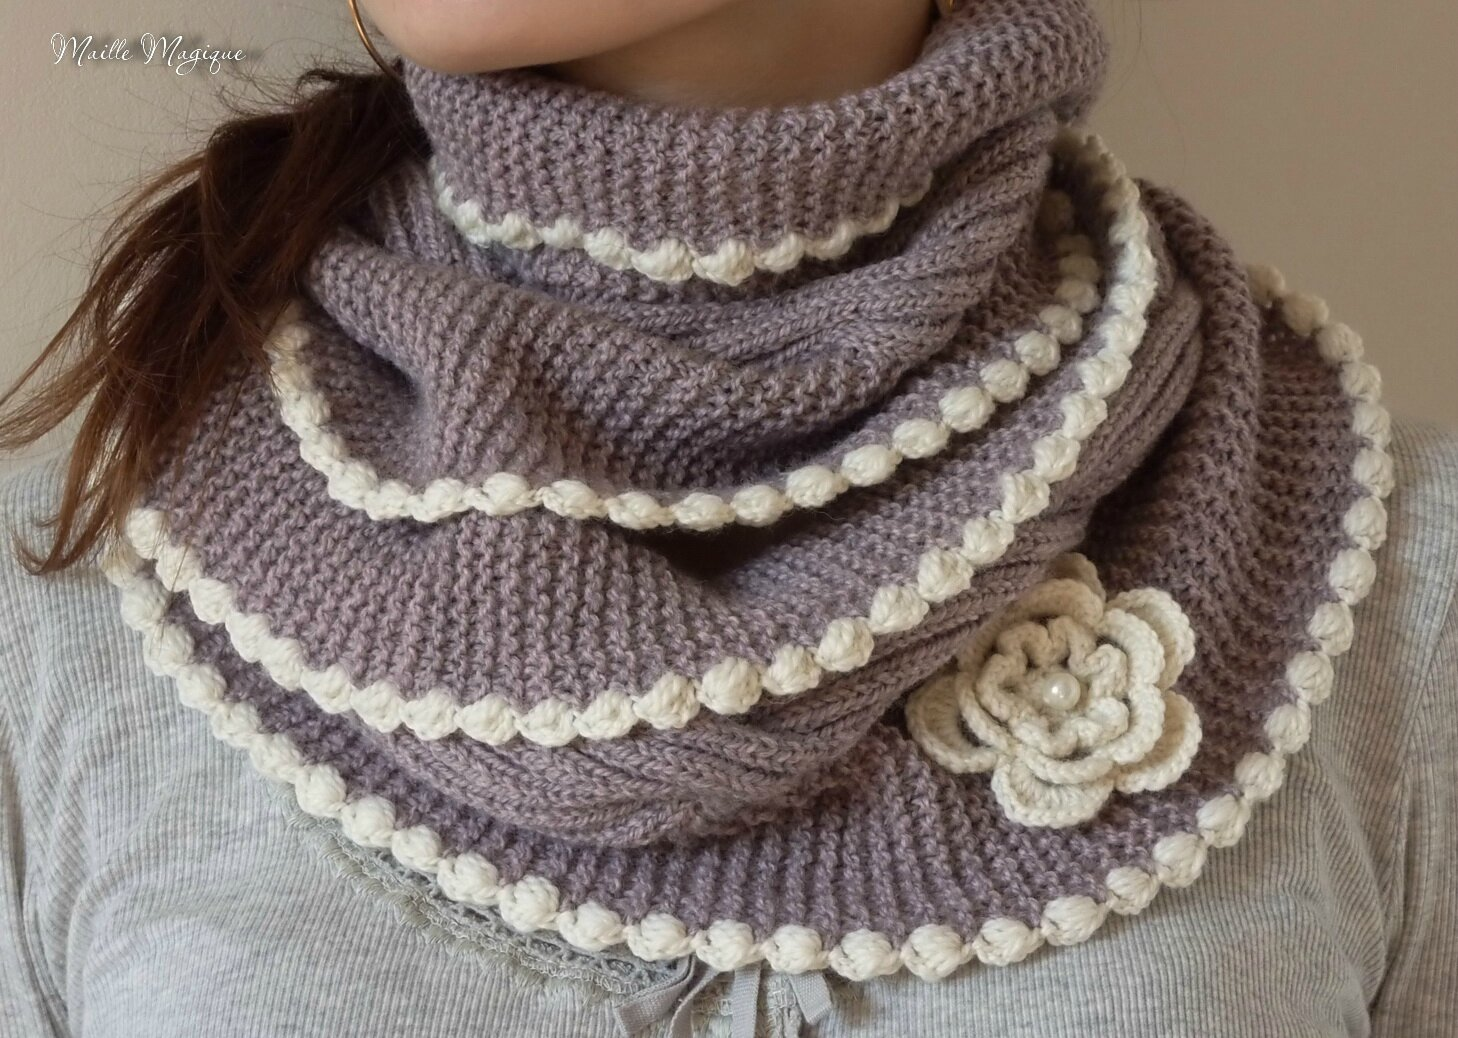 Tricoter un snood dimensions - Comment faire une diminution au tricot ...